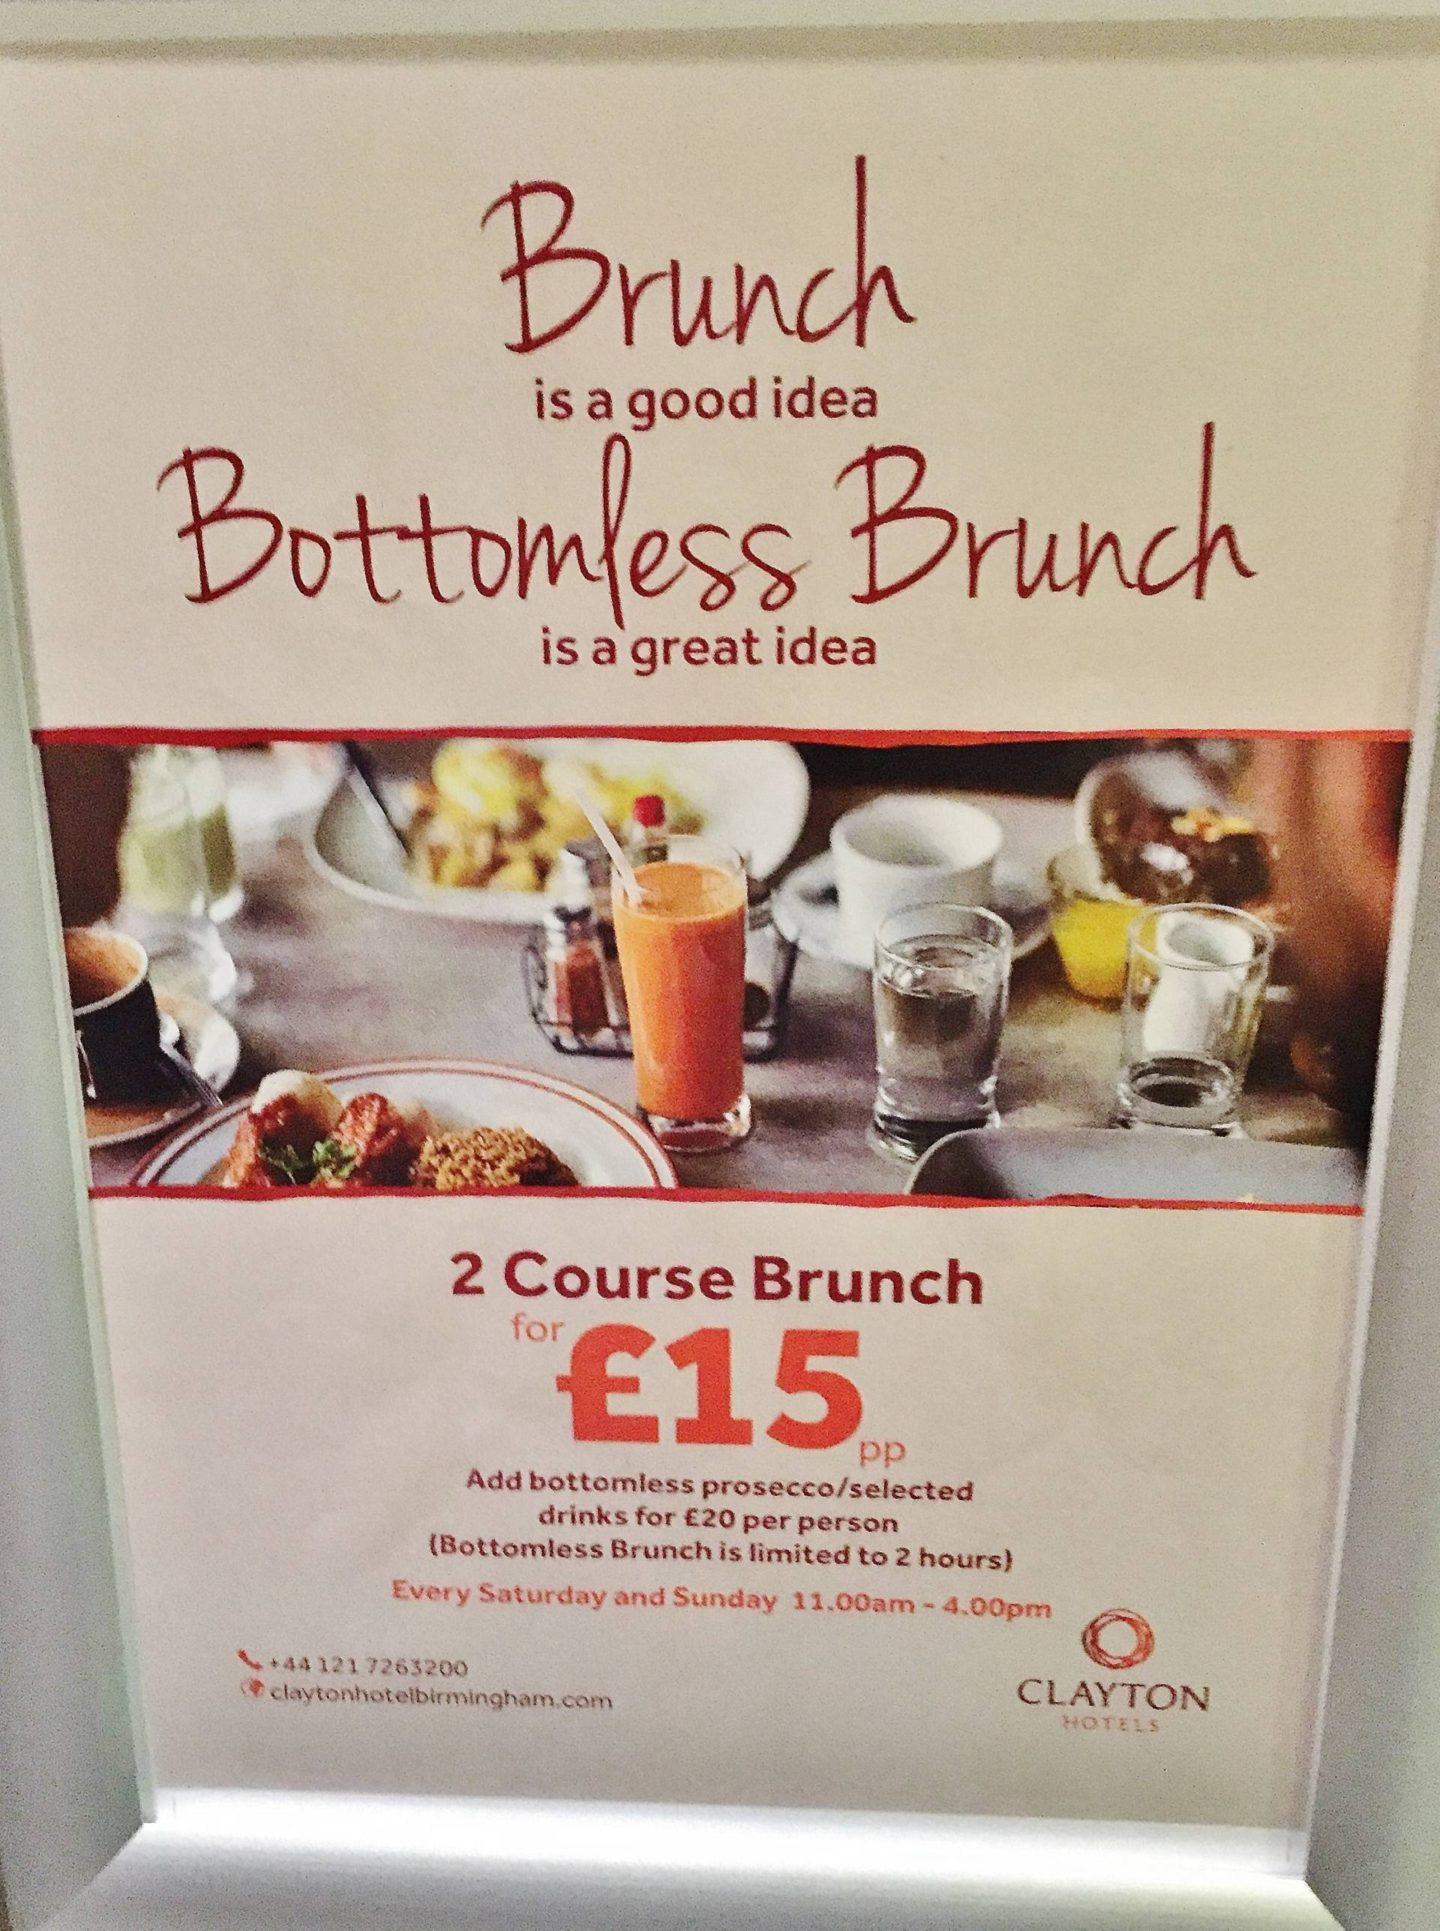 Clayton Hotel Bottomless Brunch